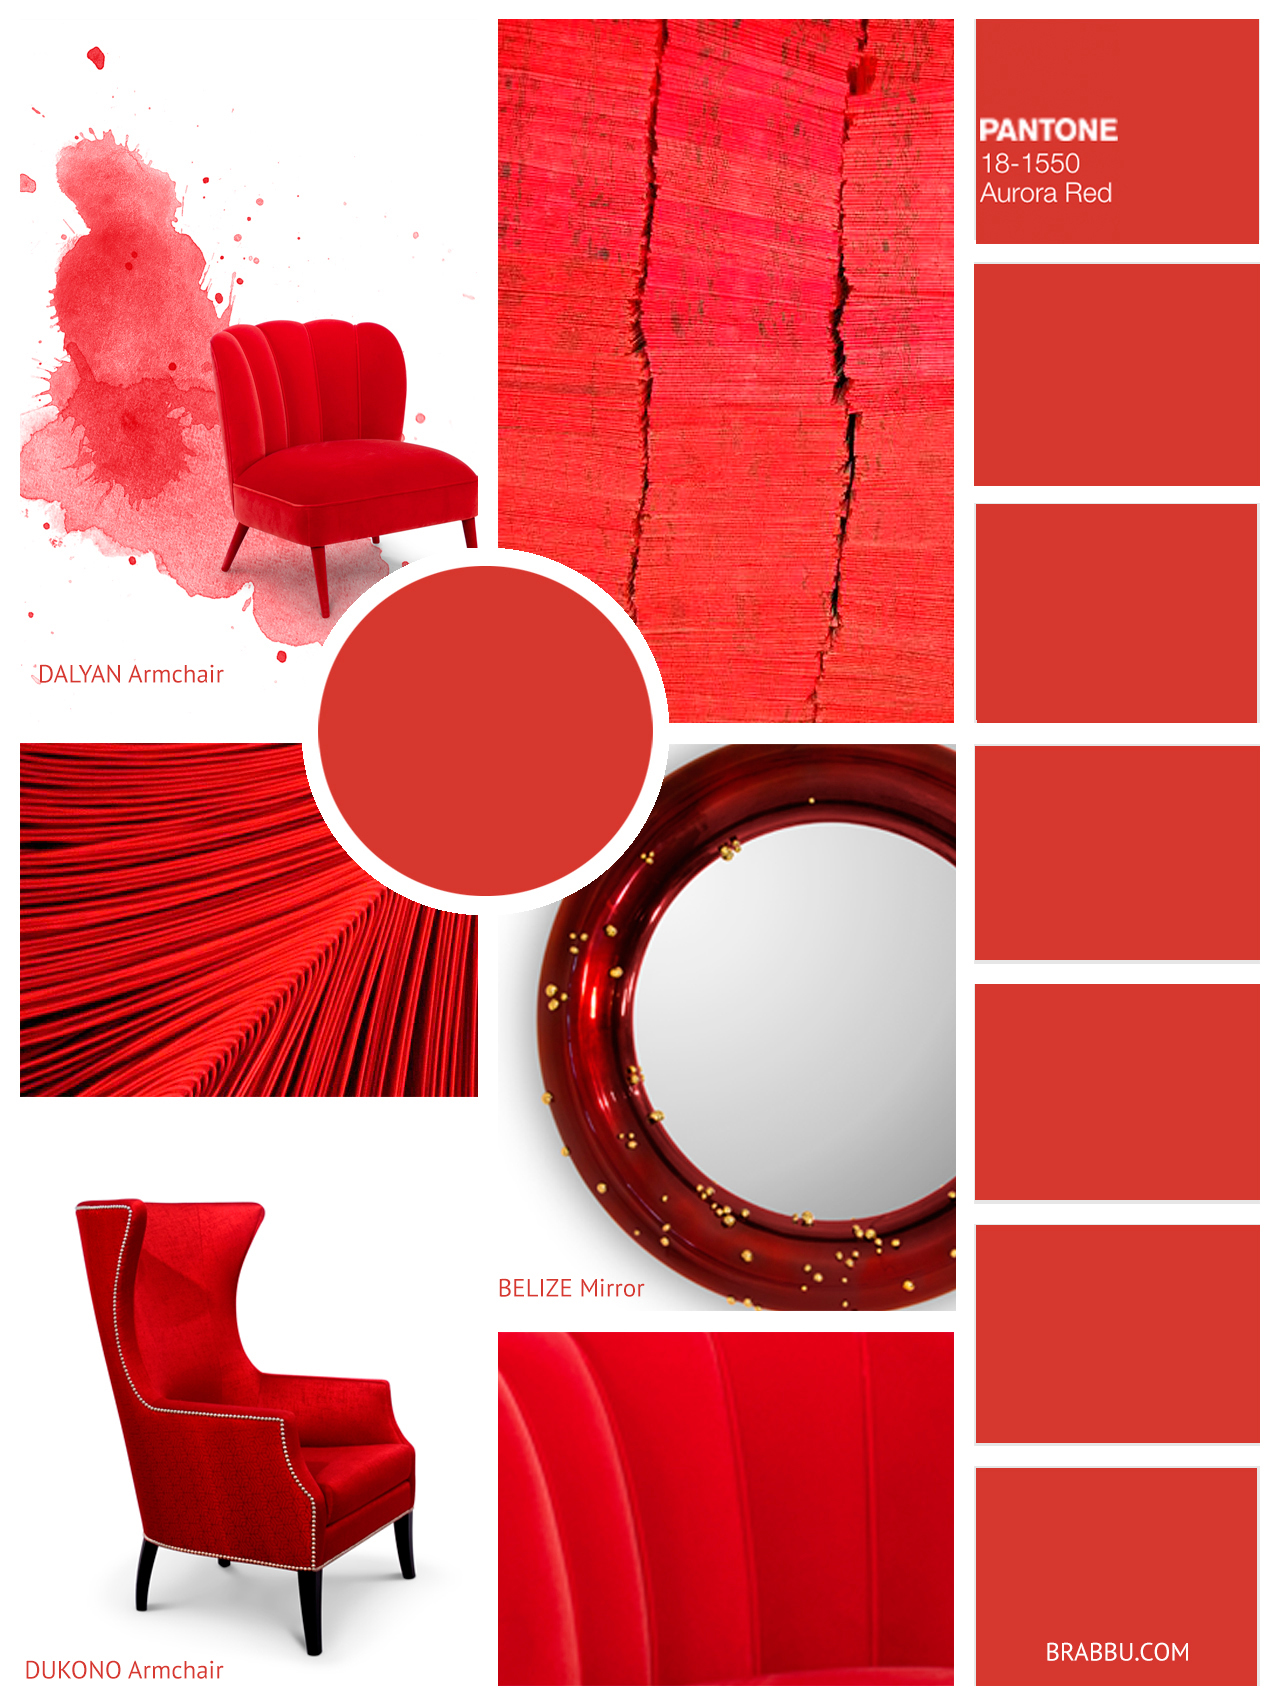 10 Amazing Colorful Chairs for A Chic Home 10 Amazing Colorful Chairs for A Chic Home 10 Amazing Colorful Chairs for A Chic Home moodboard by brabbu 14 HR